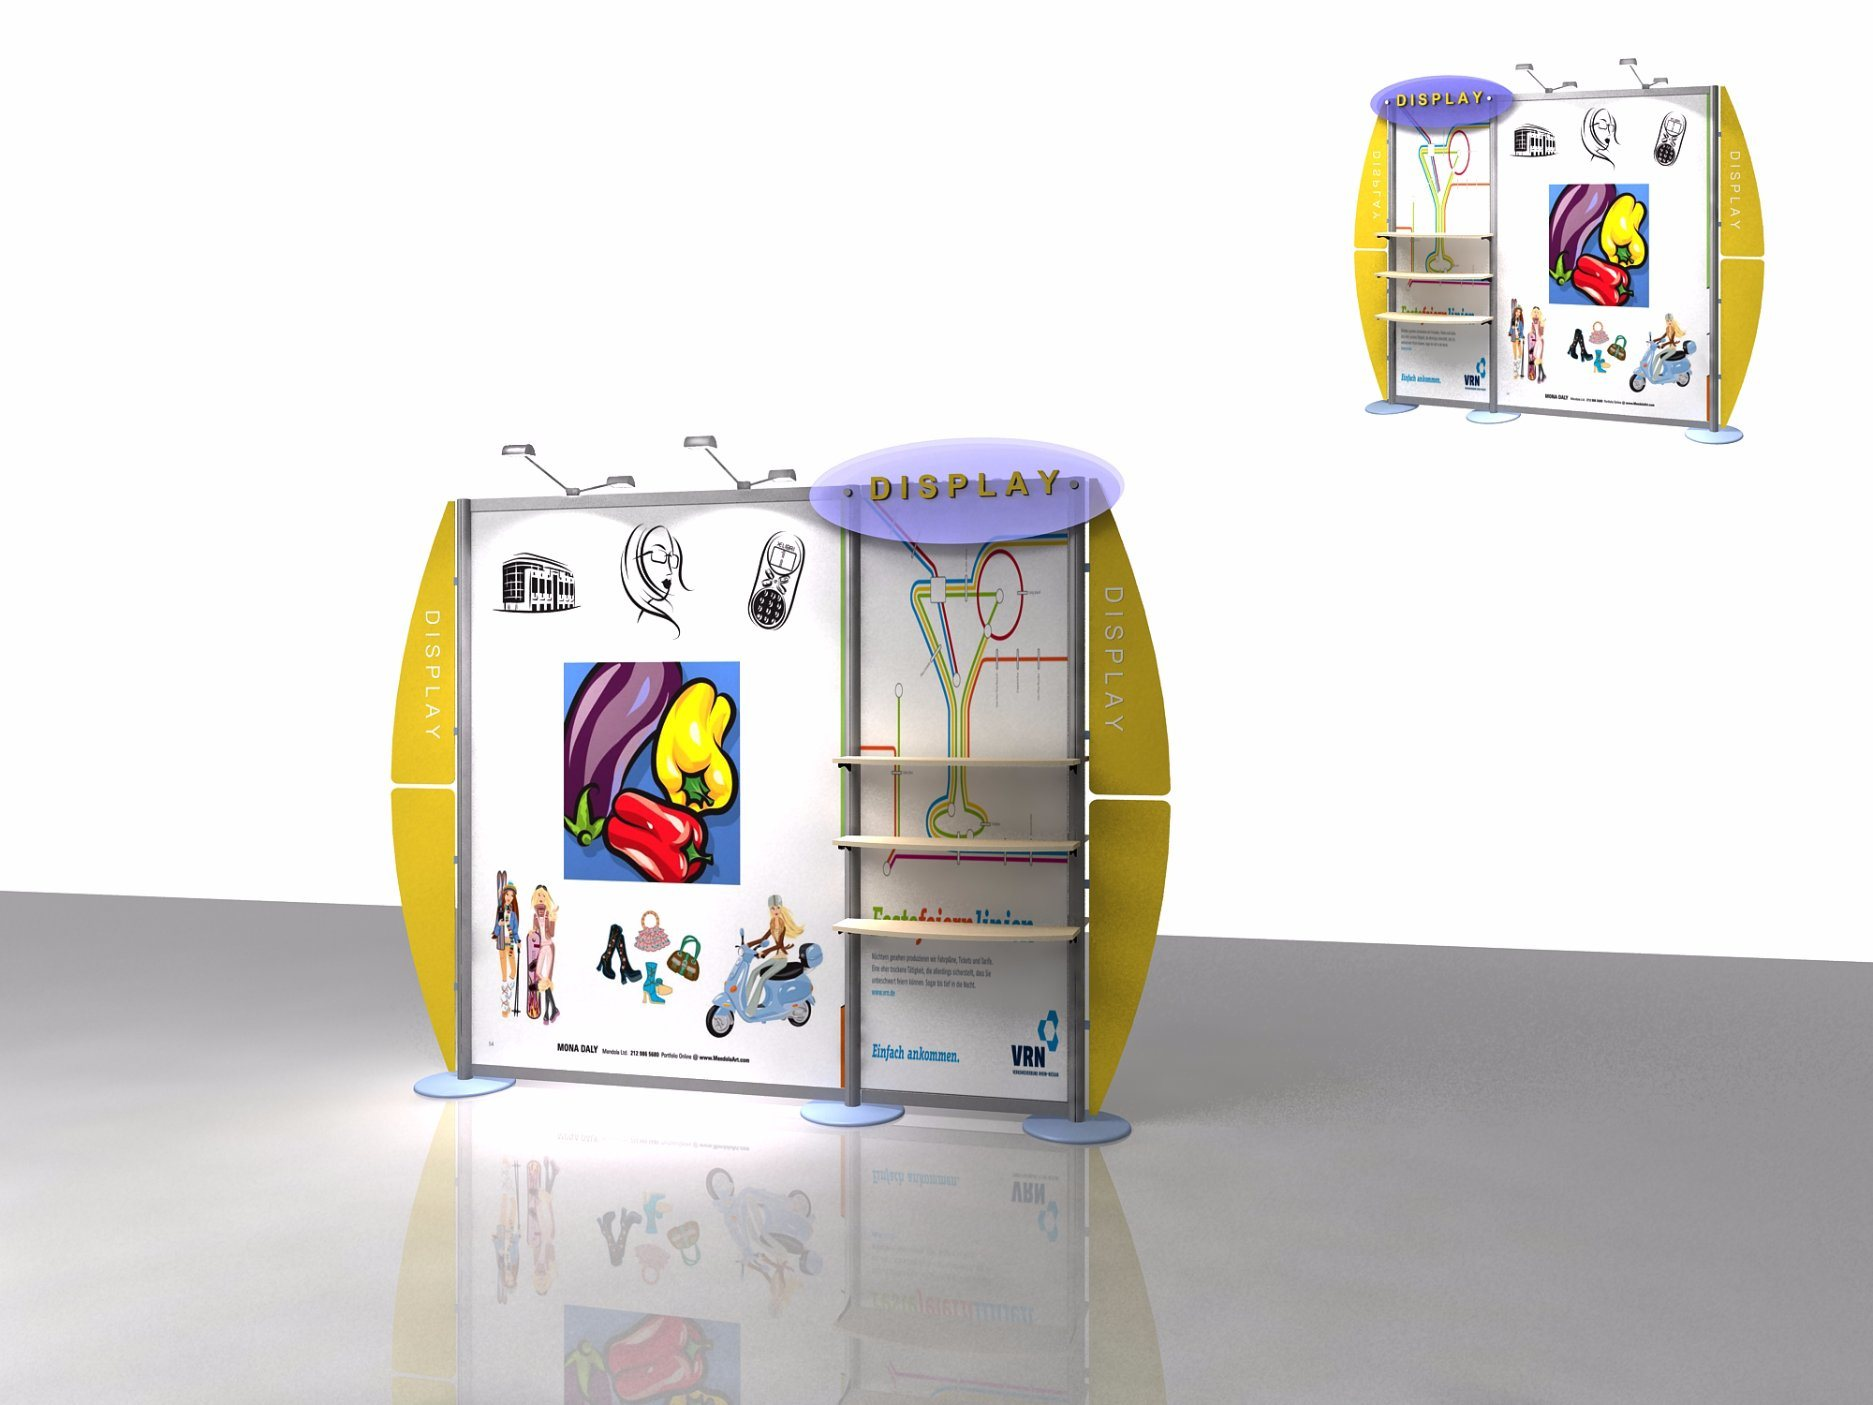 Trade Show Booth Hs Code : Folded exhibition booth advertising stand equipment with sport lights